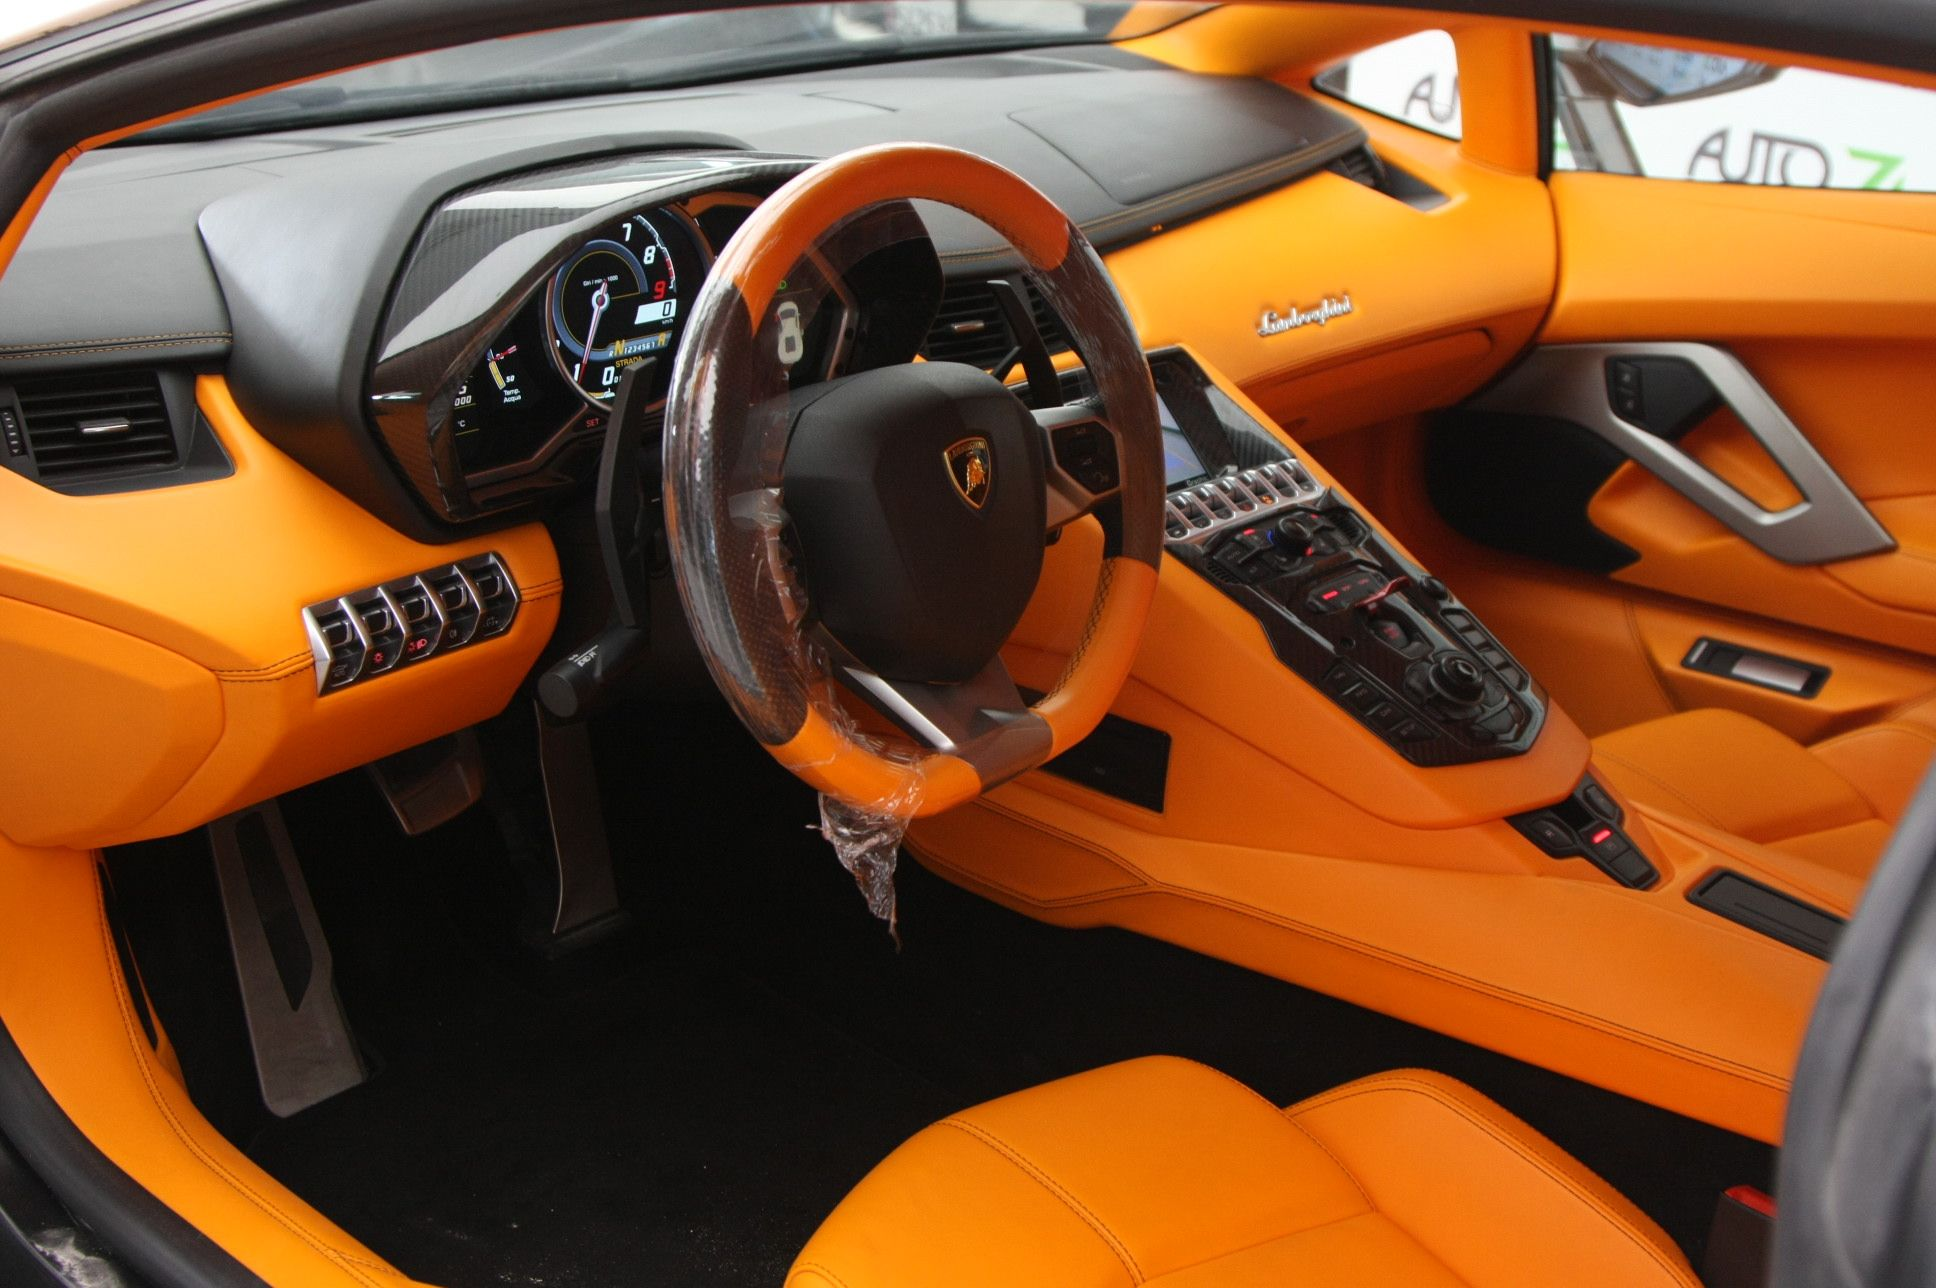 lamborghini aventador orange and black arancia interior auto addiction interiors pinterest. Black Bedroom Furniture Sets. Home Design Ideas